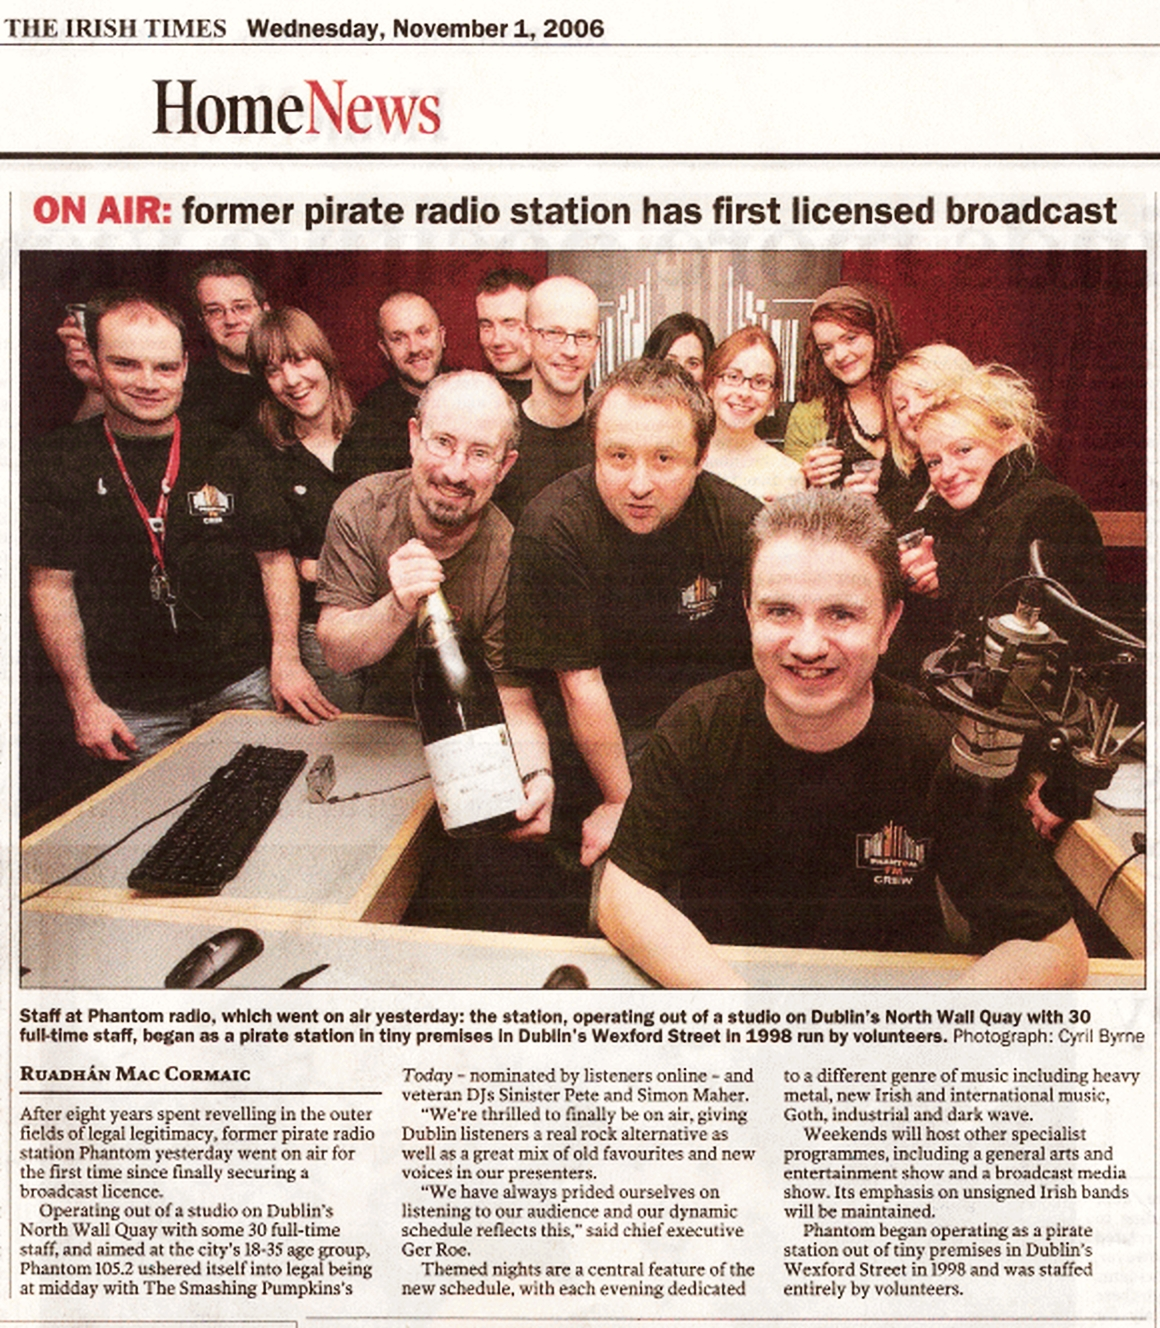 Day two for the licensed version of Phantom  FM. This is every minute of live programming from their second day on air on 105.2MHz in Dublin. The day starts with Sinister Pete serving Breakfast from 7am.